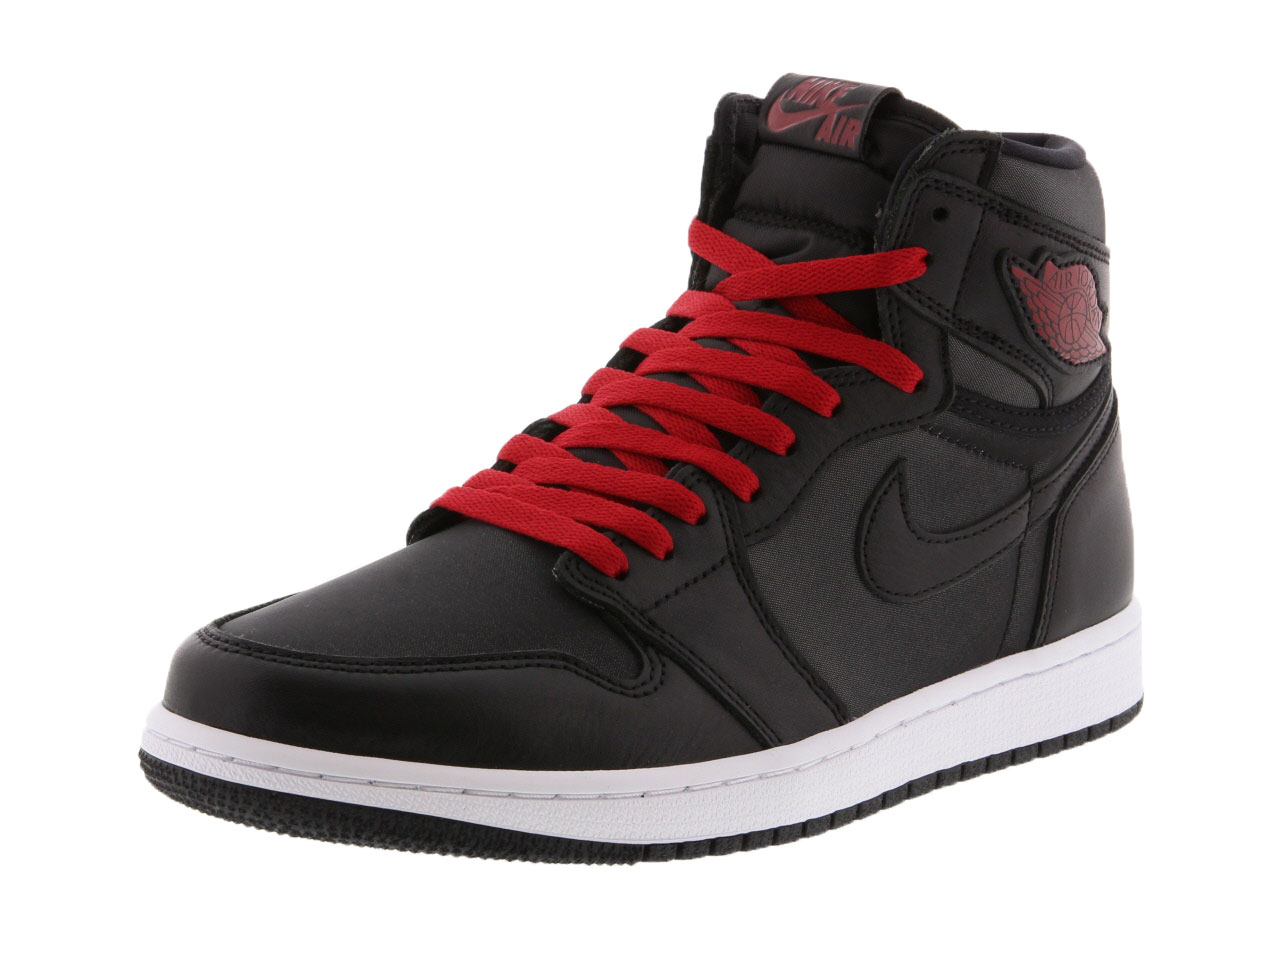 【SALE】AIR JORDAN 1 RETRO HIGH OG - BLACK/GYM RED